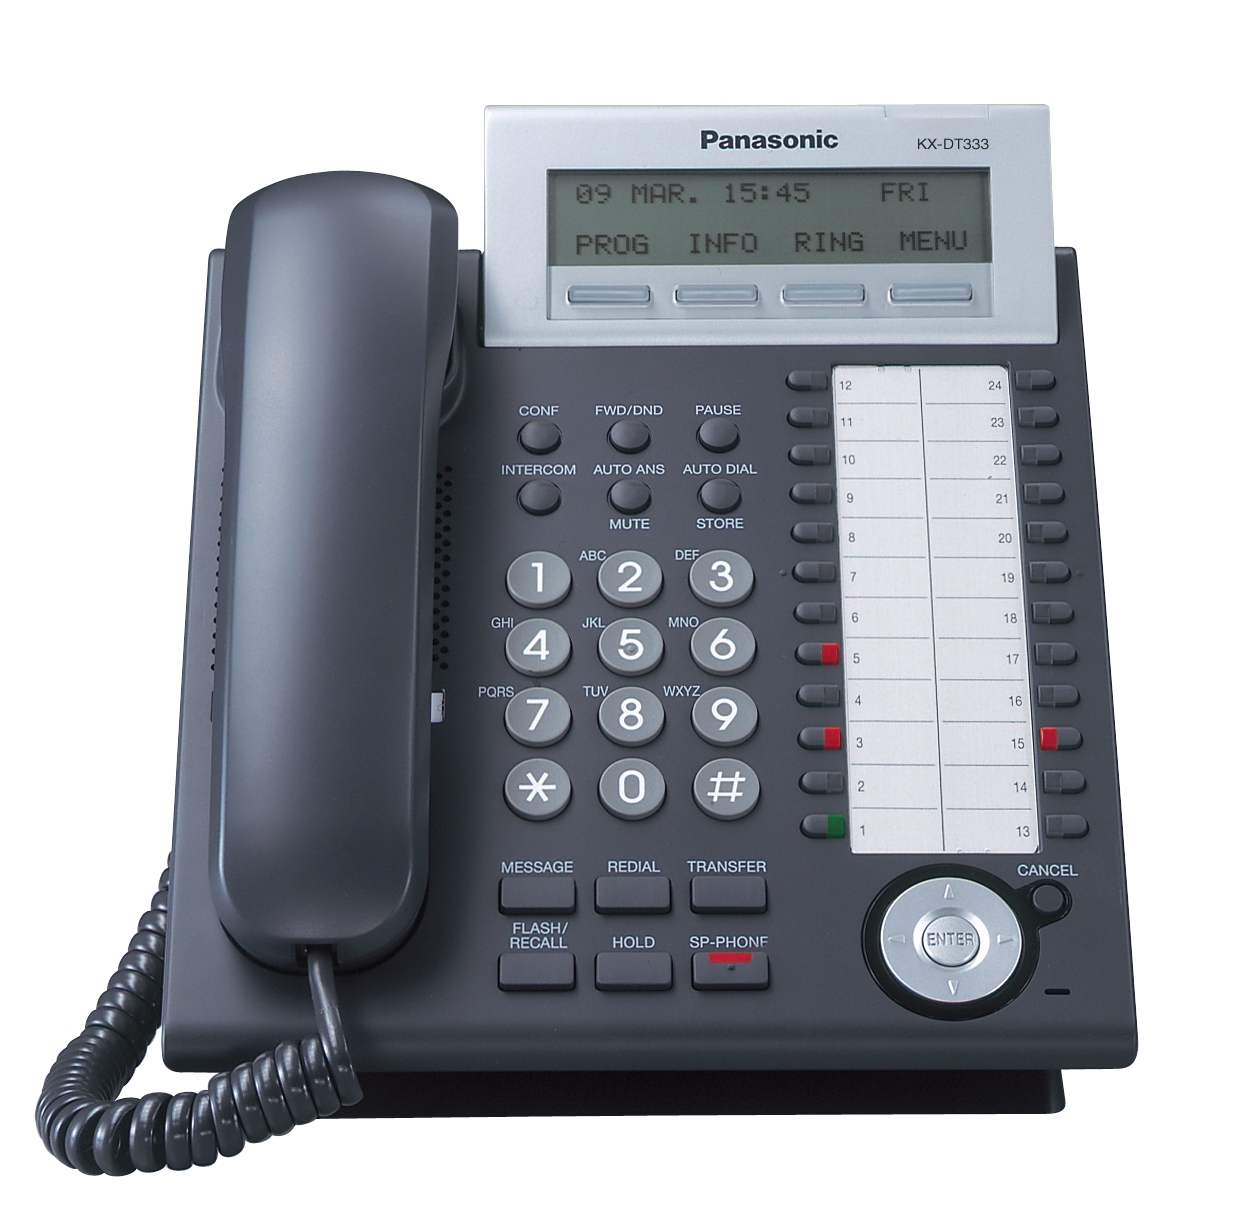 Switchtek Secondhand Telephone systems Gold Coast Panasonic